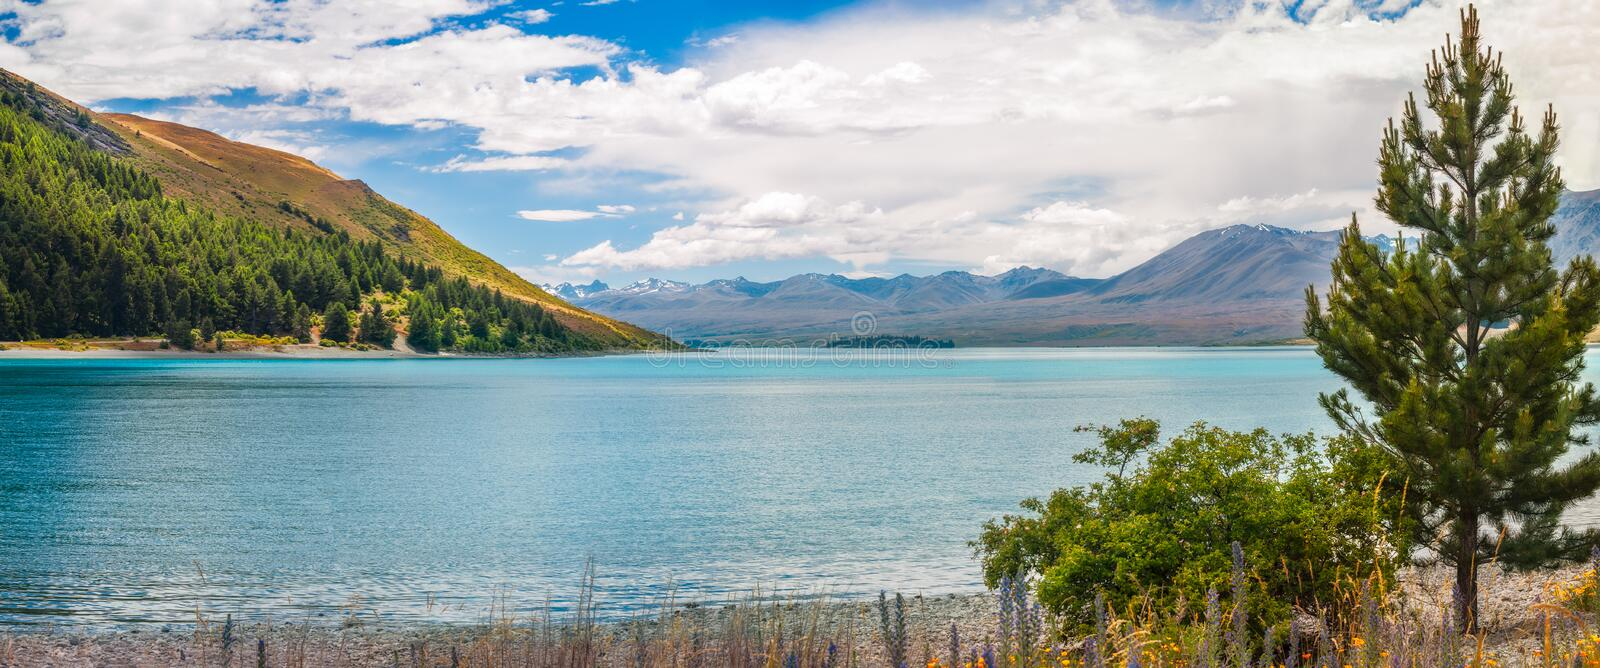 Download On The Shore Of Lake Tekapo In New Zealand Stock Image - Image of peaceful, panorama: 109902855